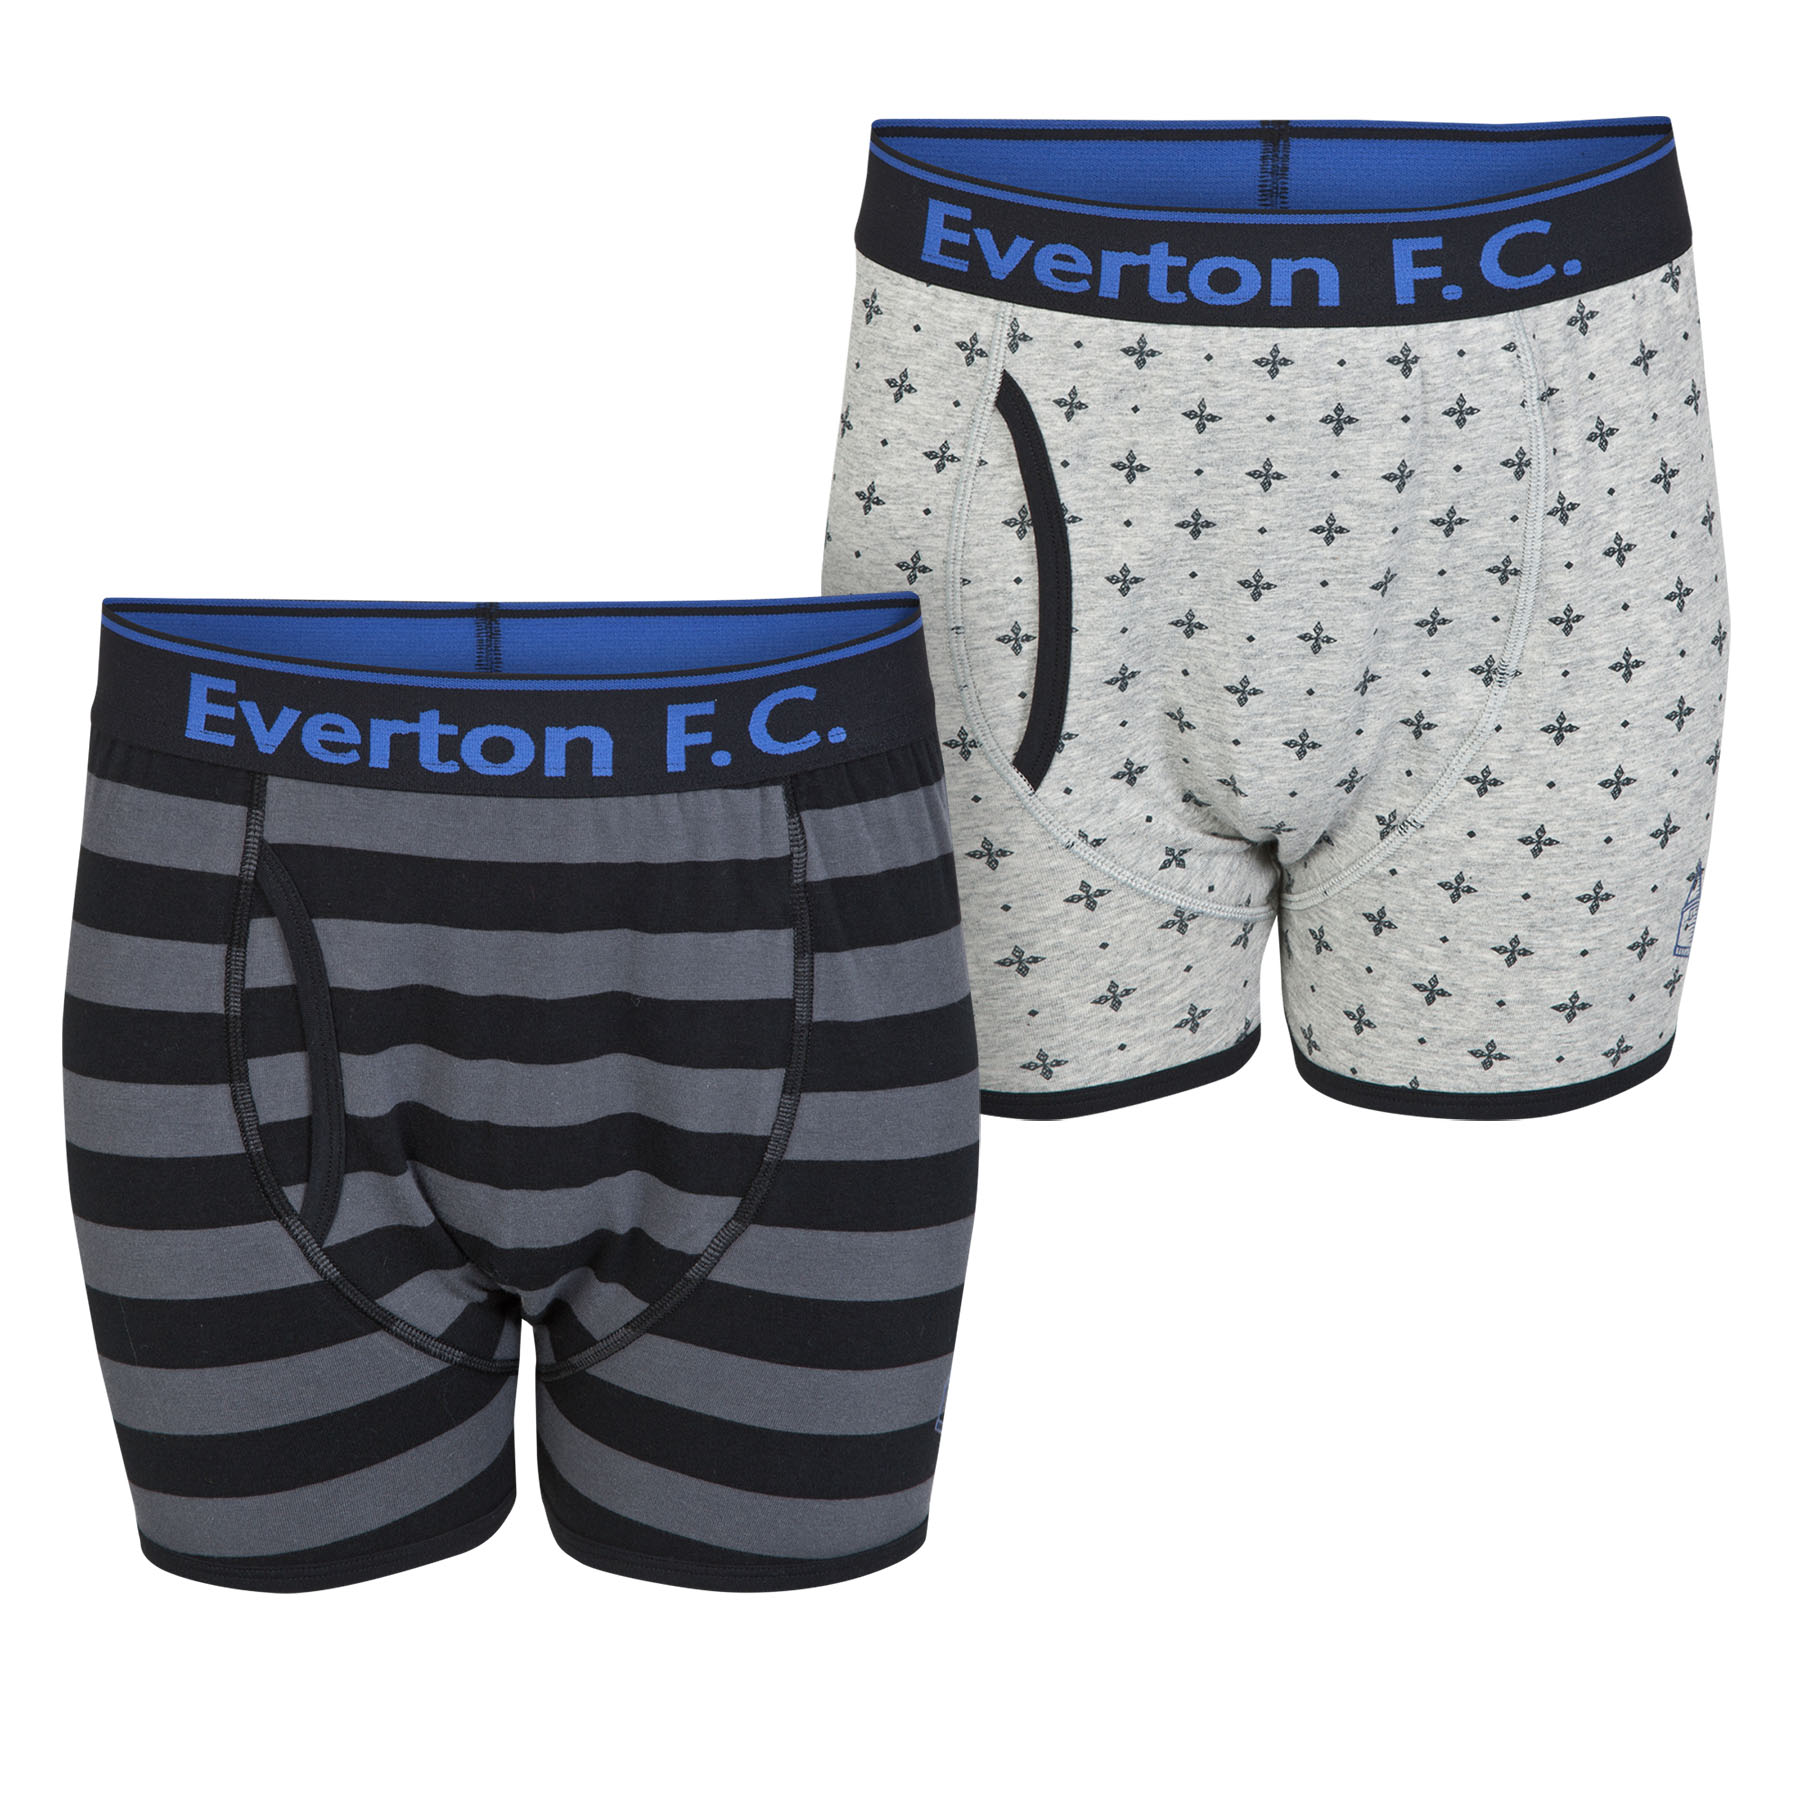 Everton 2pk Boxer Shorts - Black/Grey - Mens